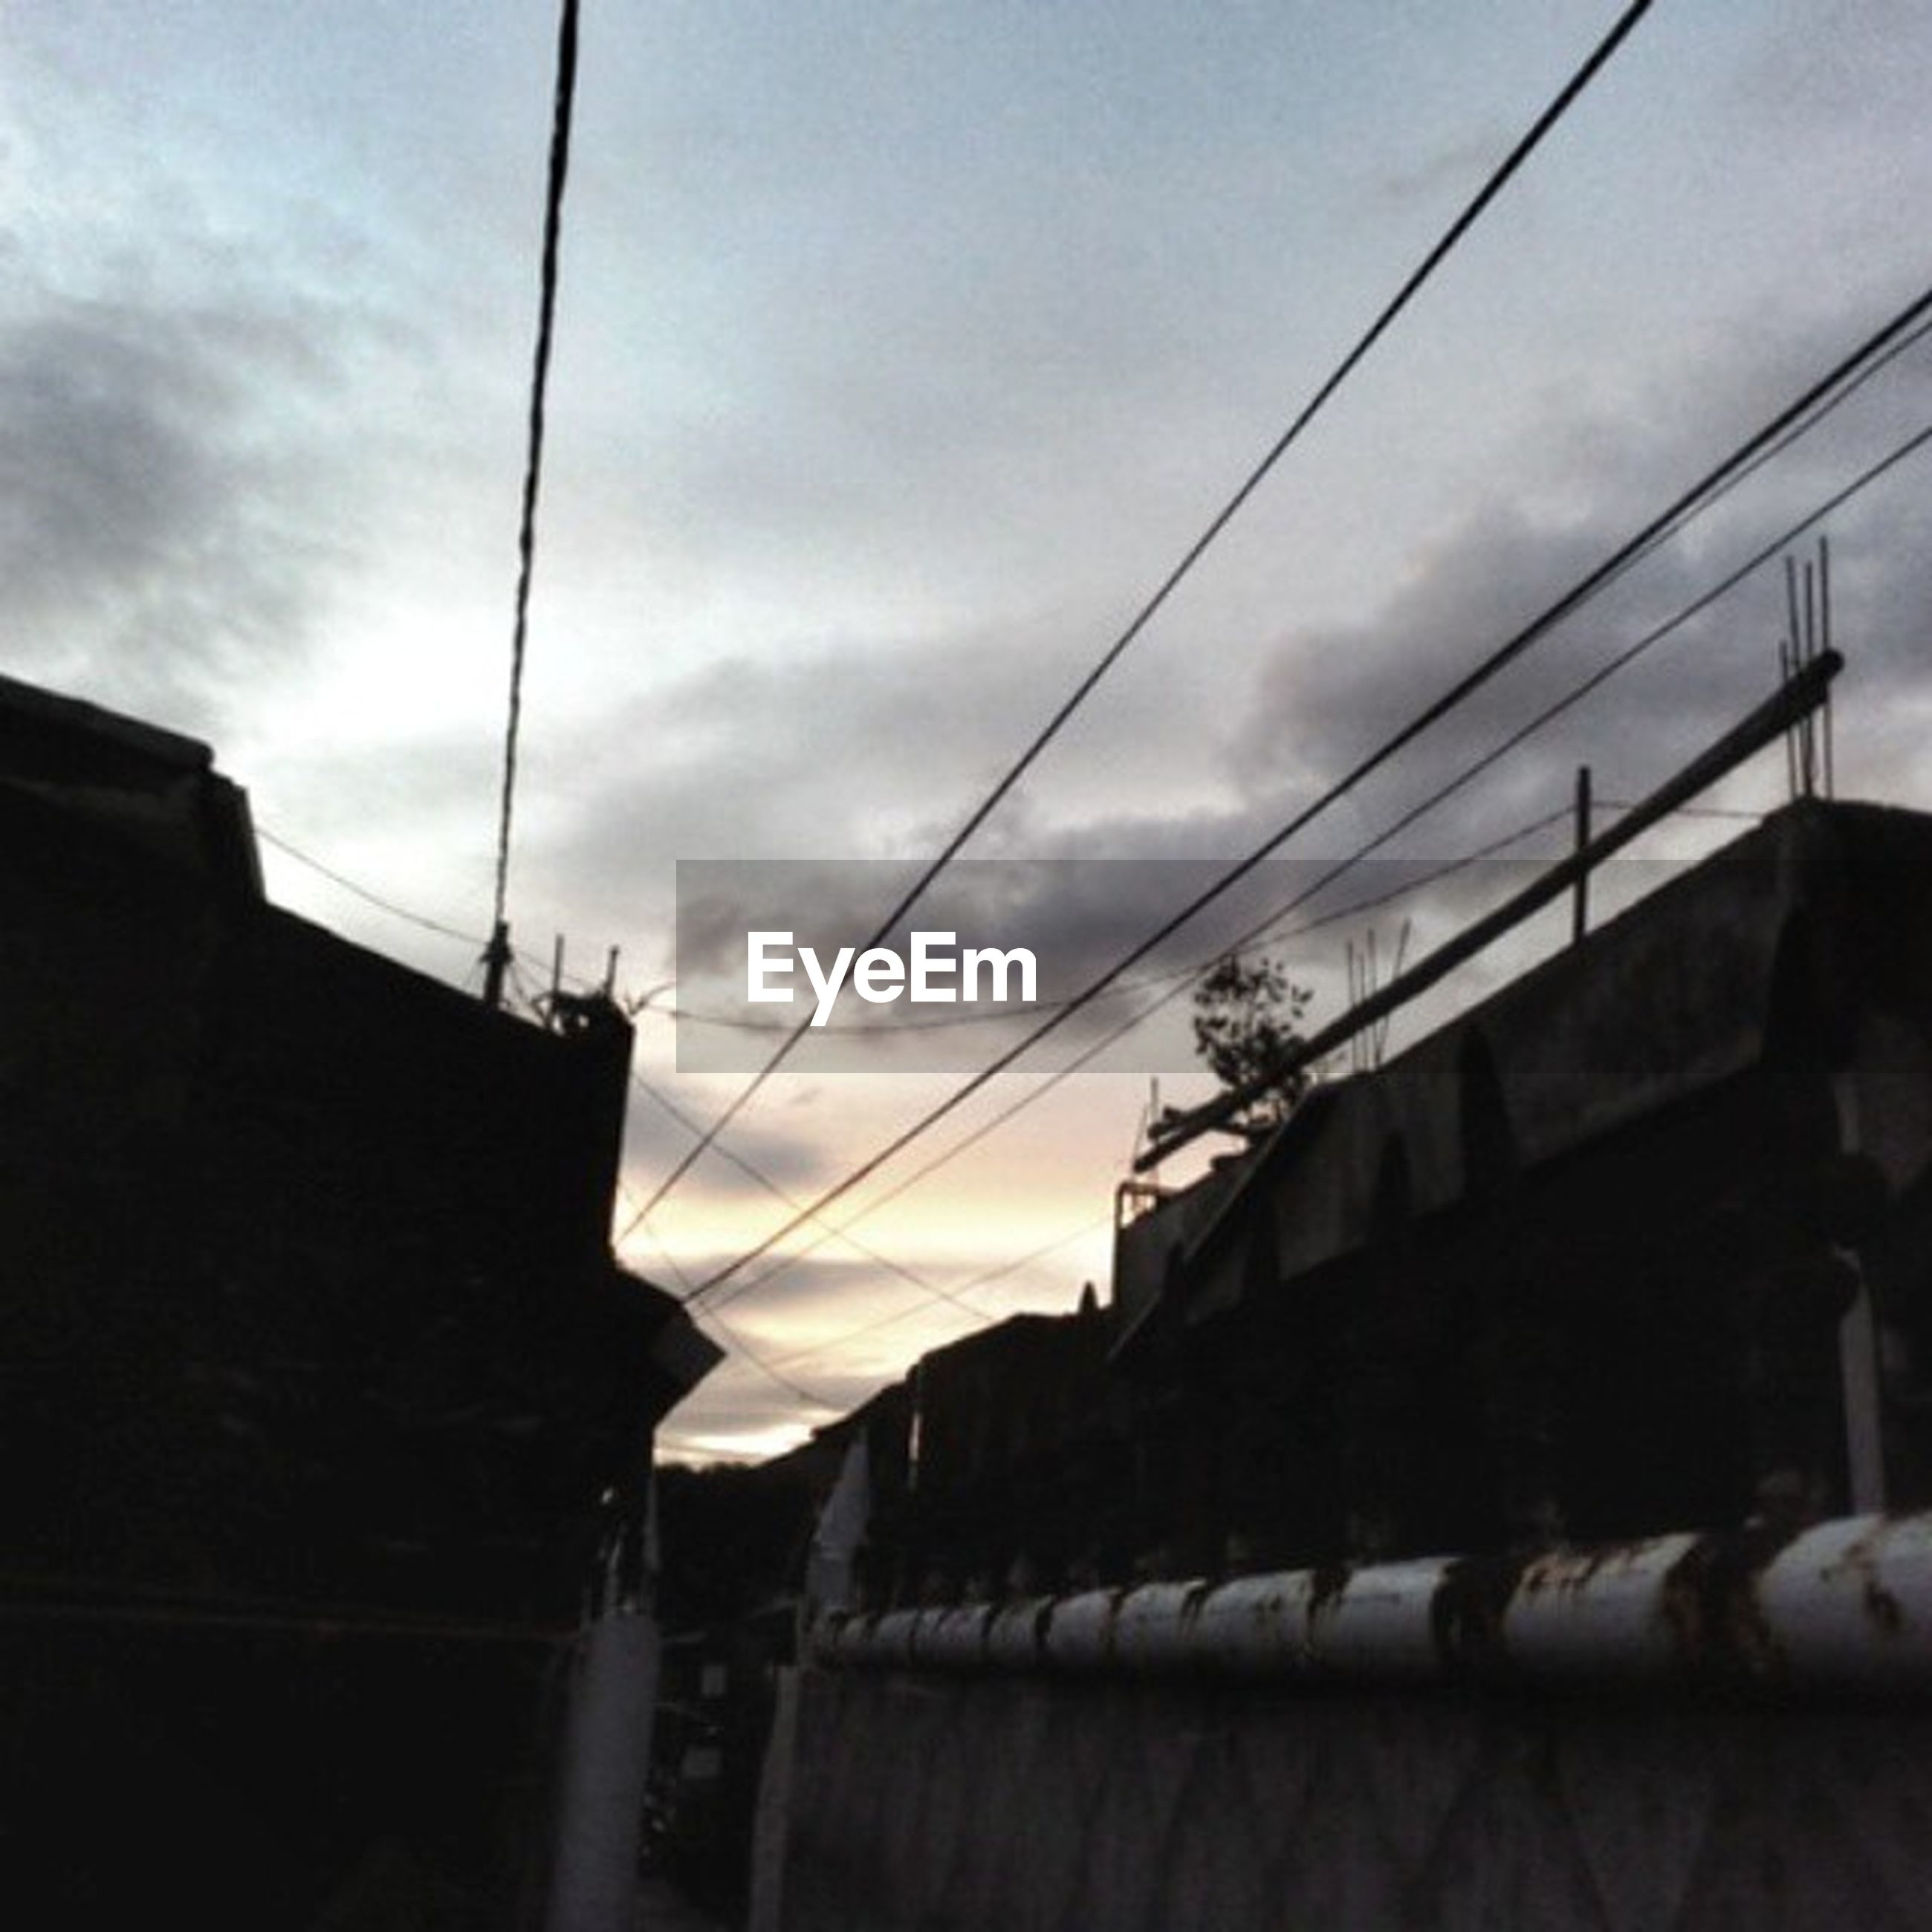 sky, power line, built structure, architecture, building exterior, cable, cloud - sky, low angle view, electricity pylon, cloud, house, power supply, electricity, connection, residential structure, cloudy, transportation, power cable, no people, silhouette